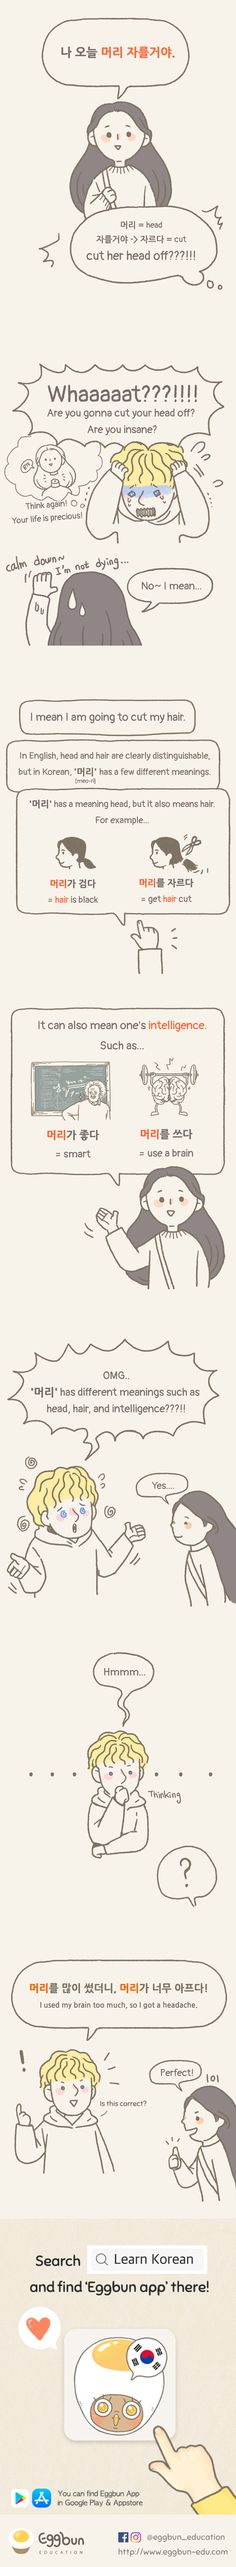 The language that solely learned with books often makes a problem when you use it in a real-life situation. Have you ever made a mistake when using Korean? We will make a cartoon with your funny episode. Korean Slang, Korean Phrases, Korean Words, Korean English, English English, English Grammar, Learn English, Learning Languages Tips, Foreign Languages